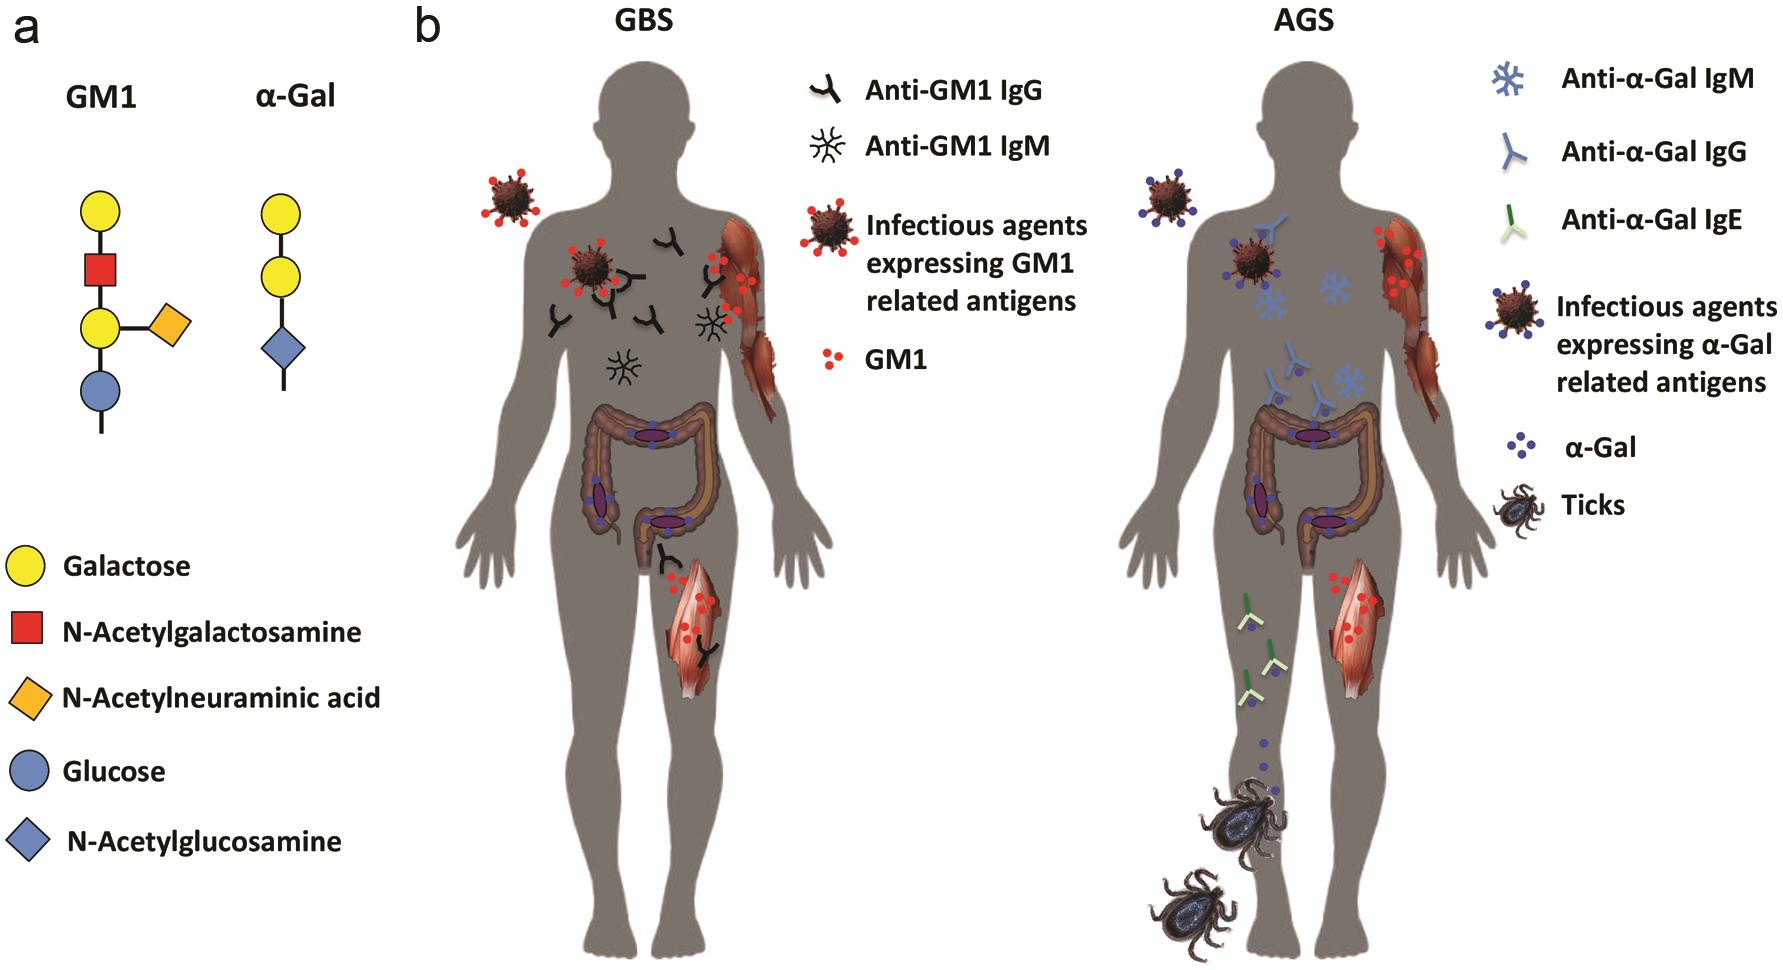 Immunological similarities between GBS and AGS.